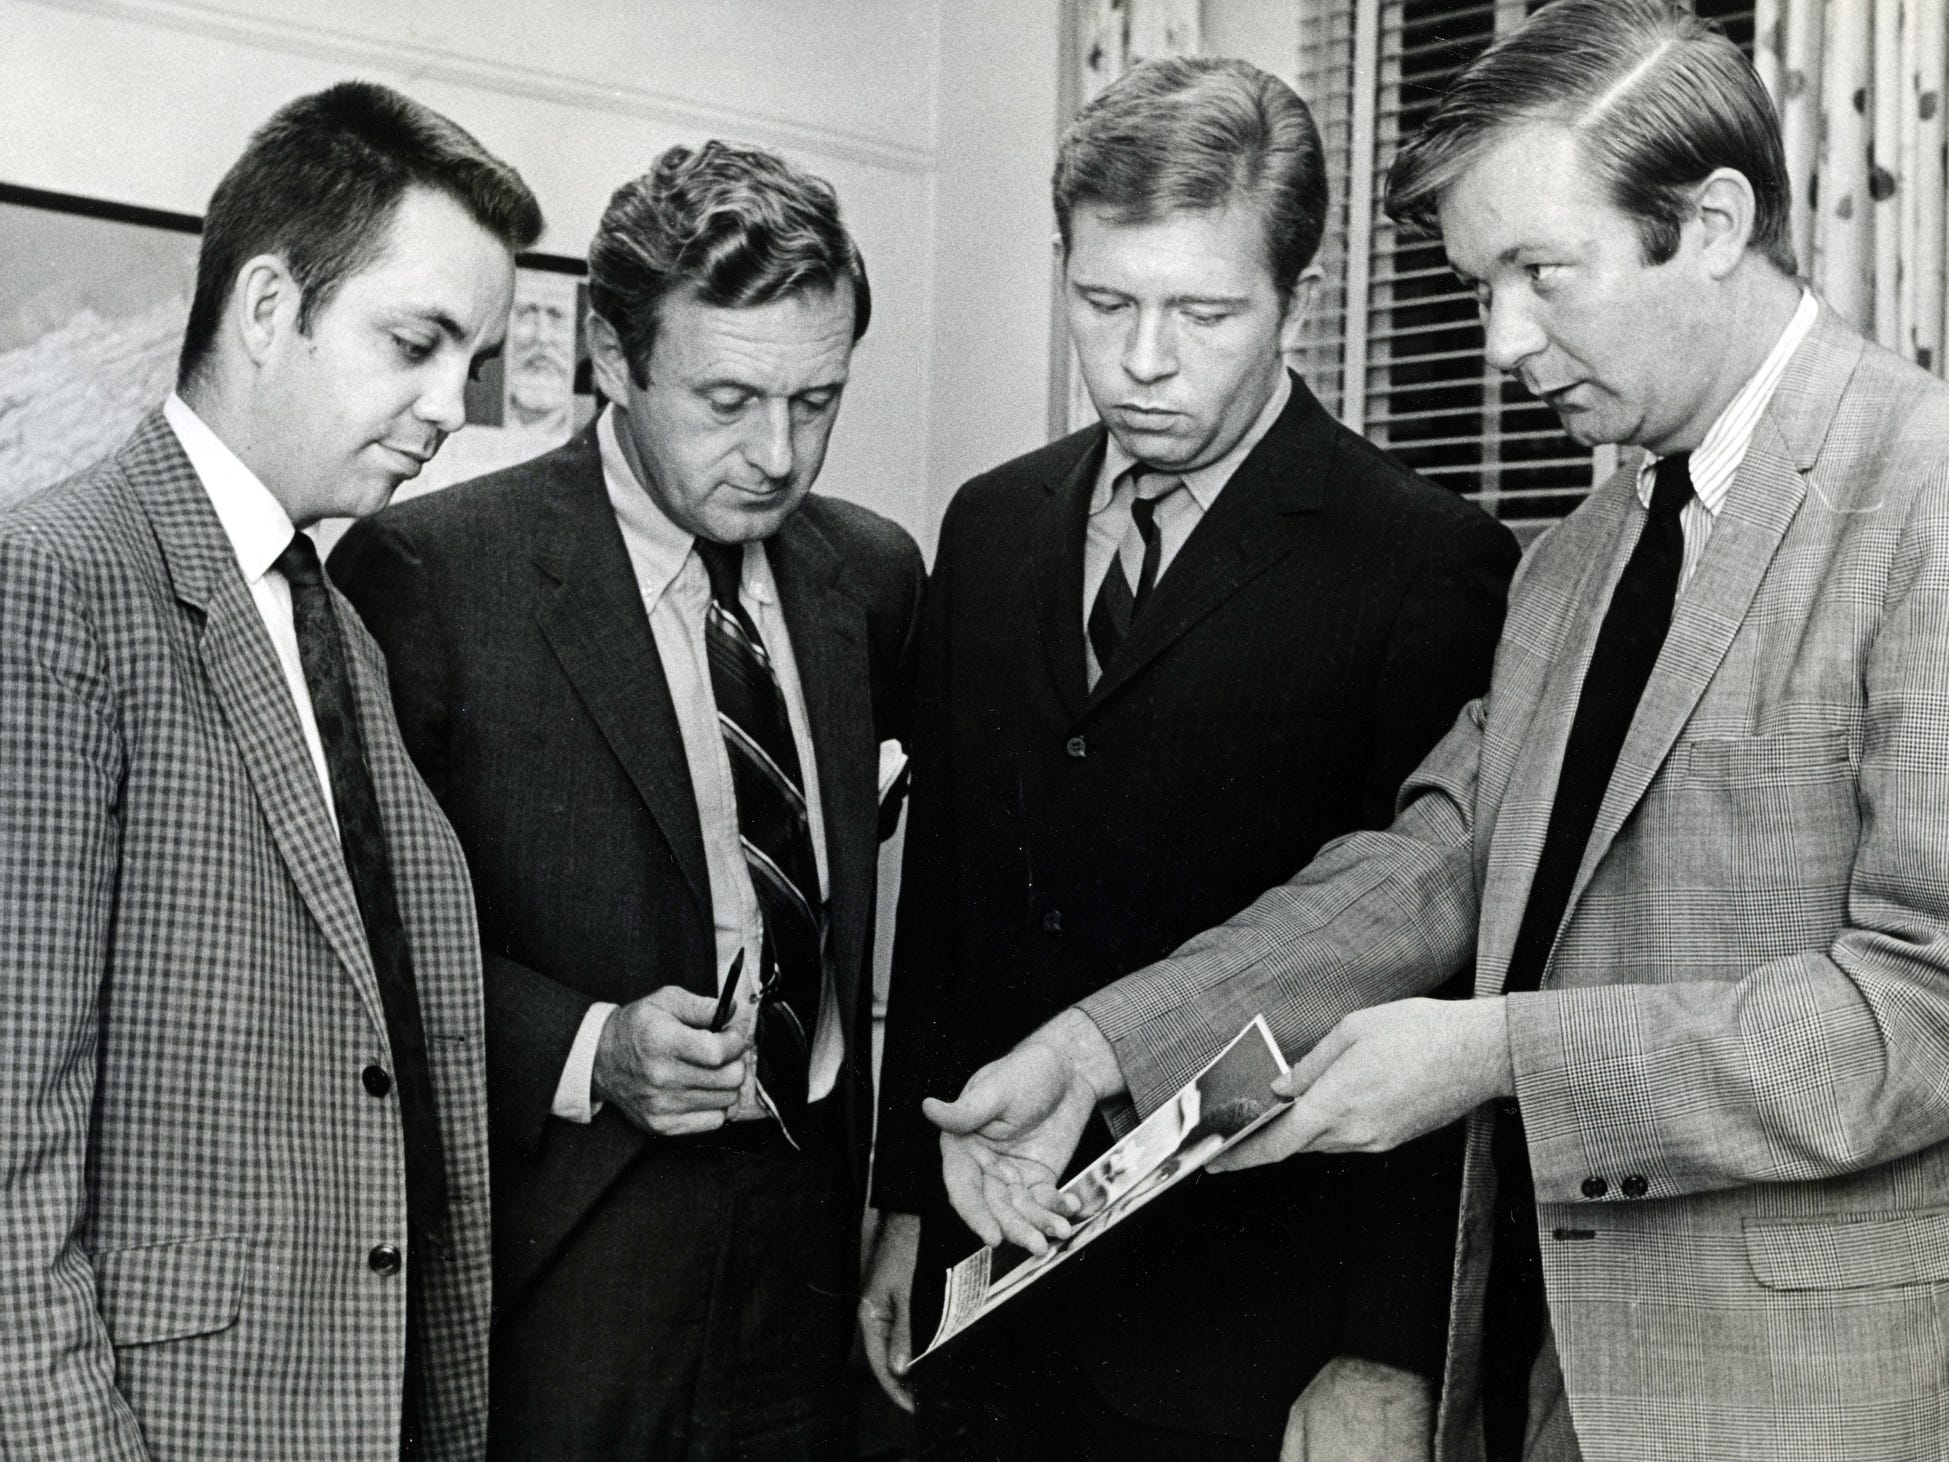 John Seigenthaler, second from left, talks with Tennessean staff members Frank Ritter, left, Jim Squires and John Hemphill at the office Sept. 10, 1969.